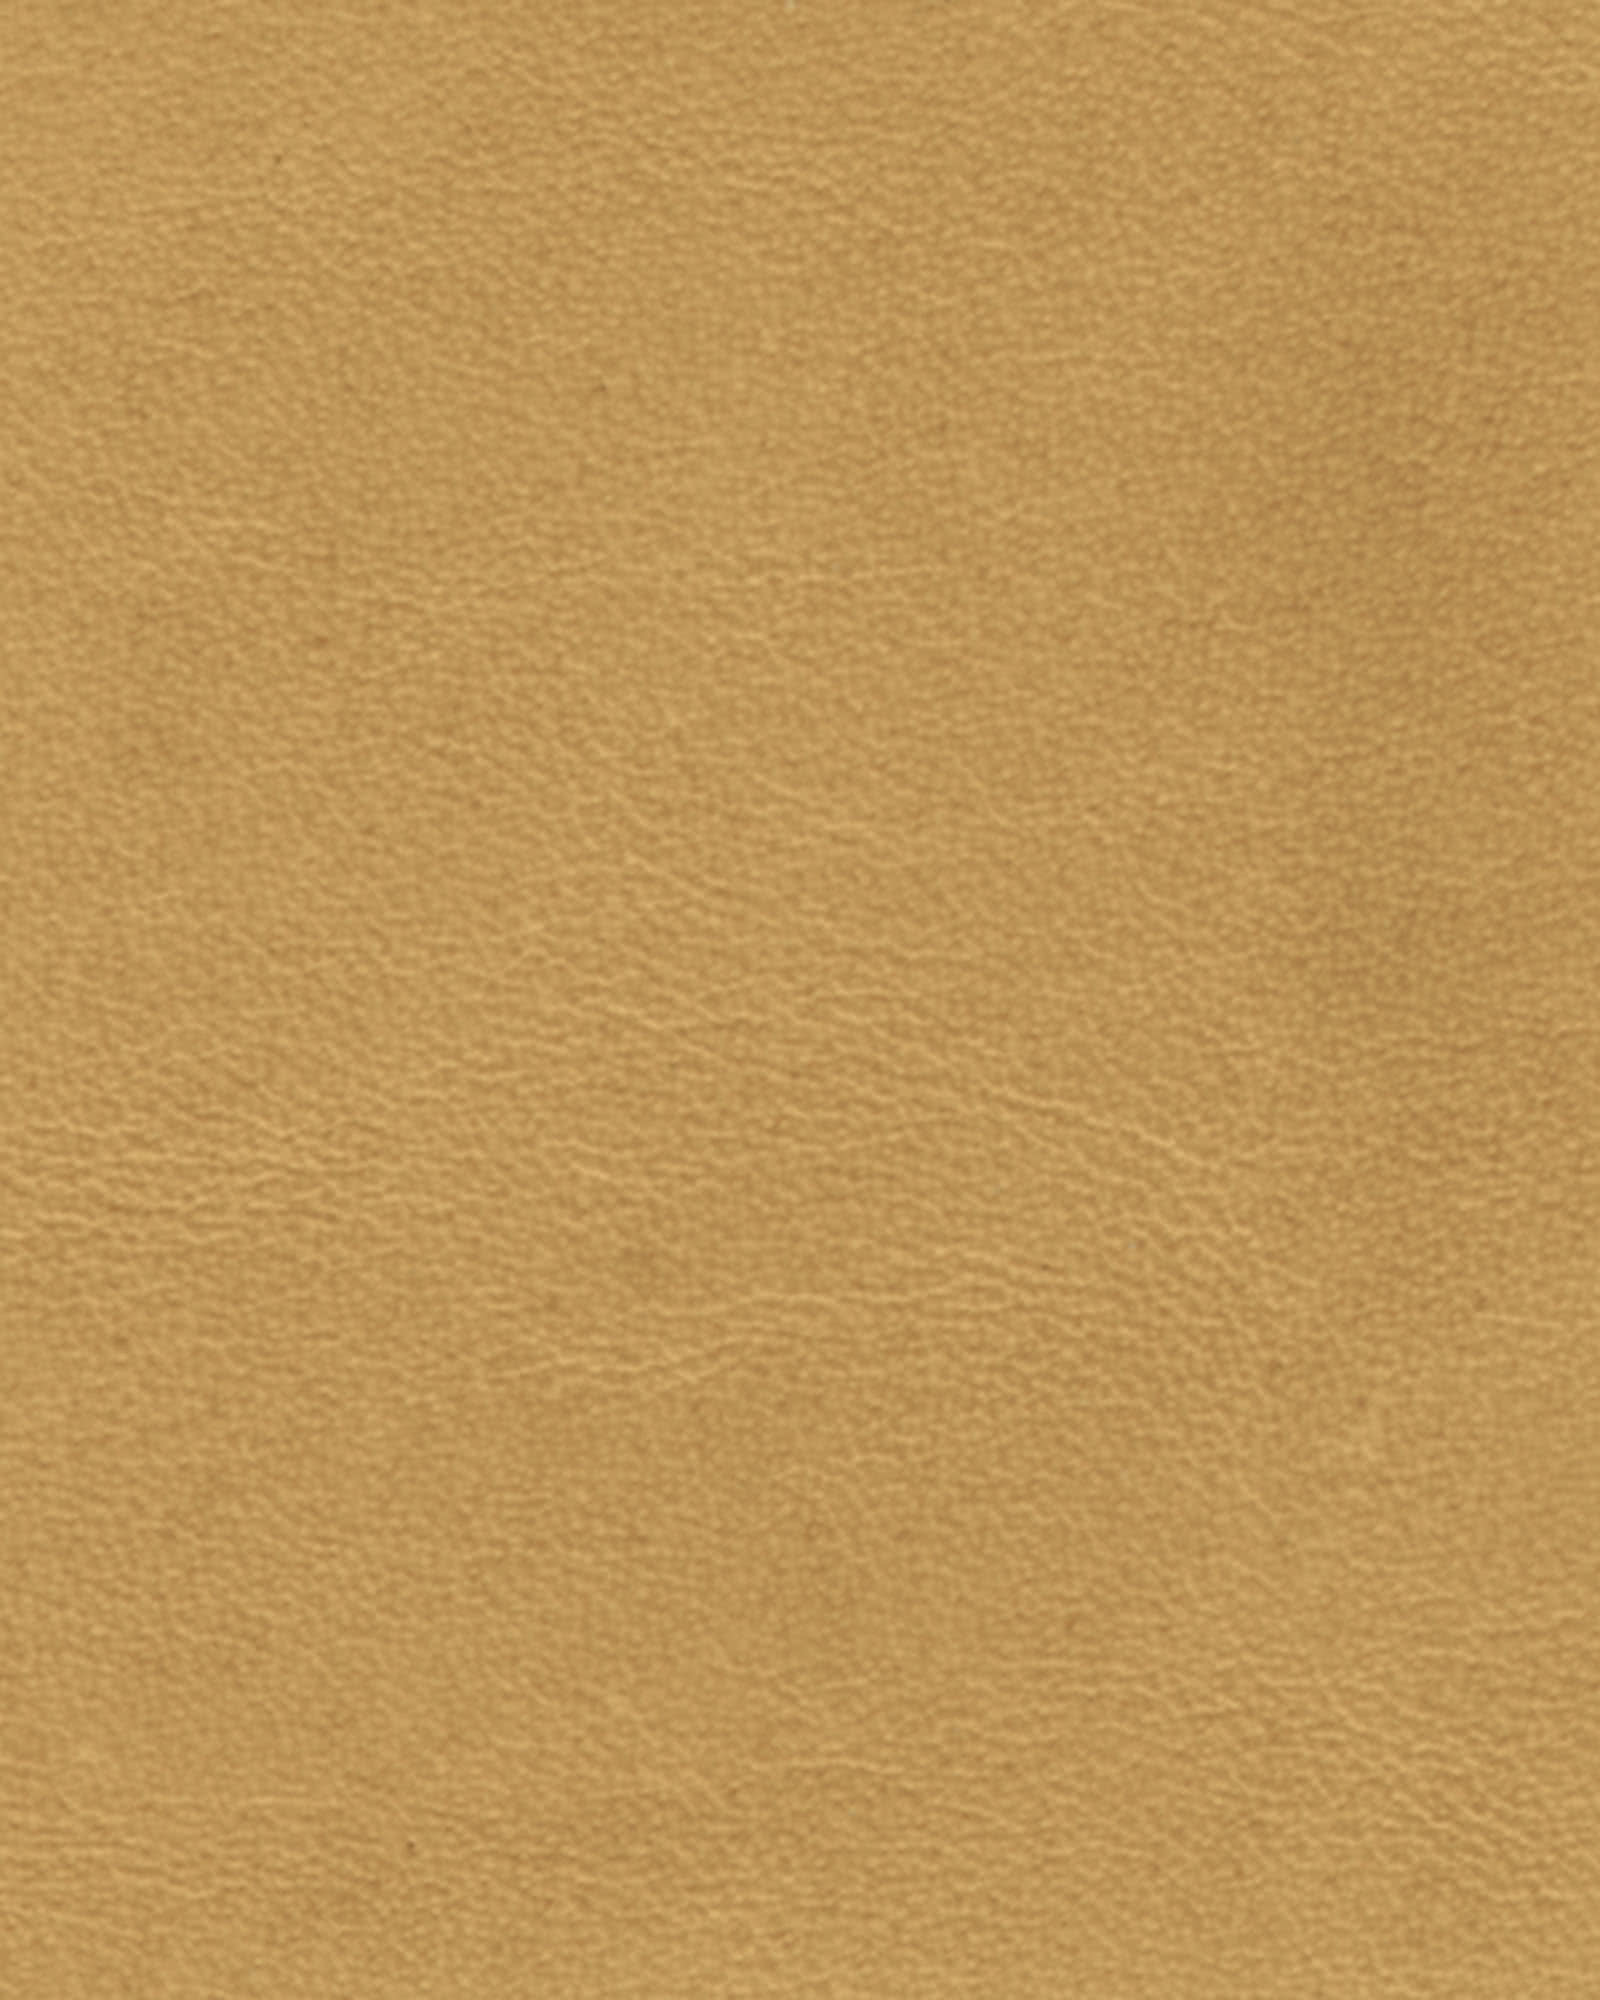 Distressed Leather - Taupe,